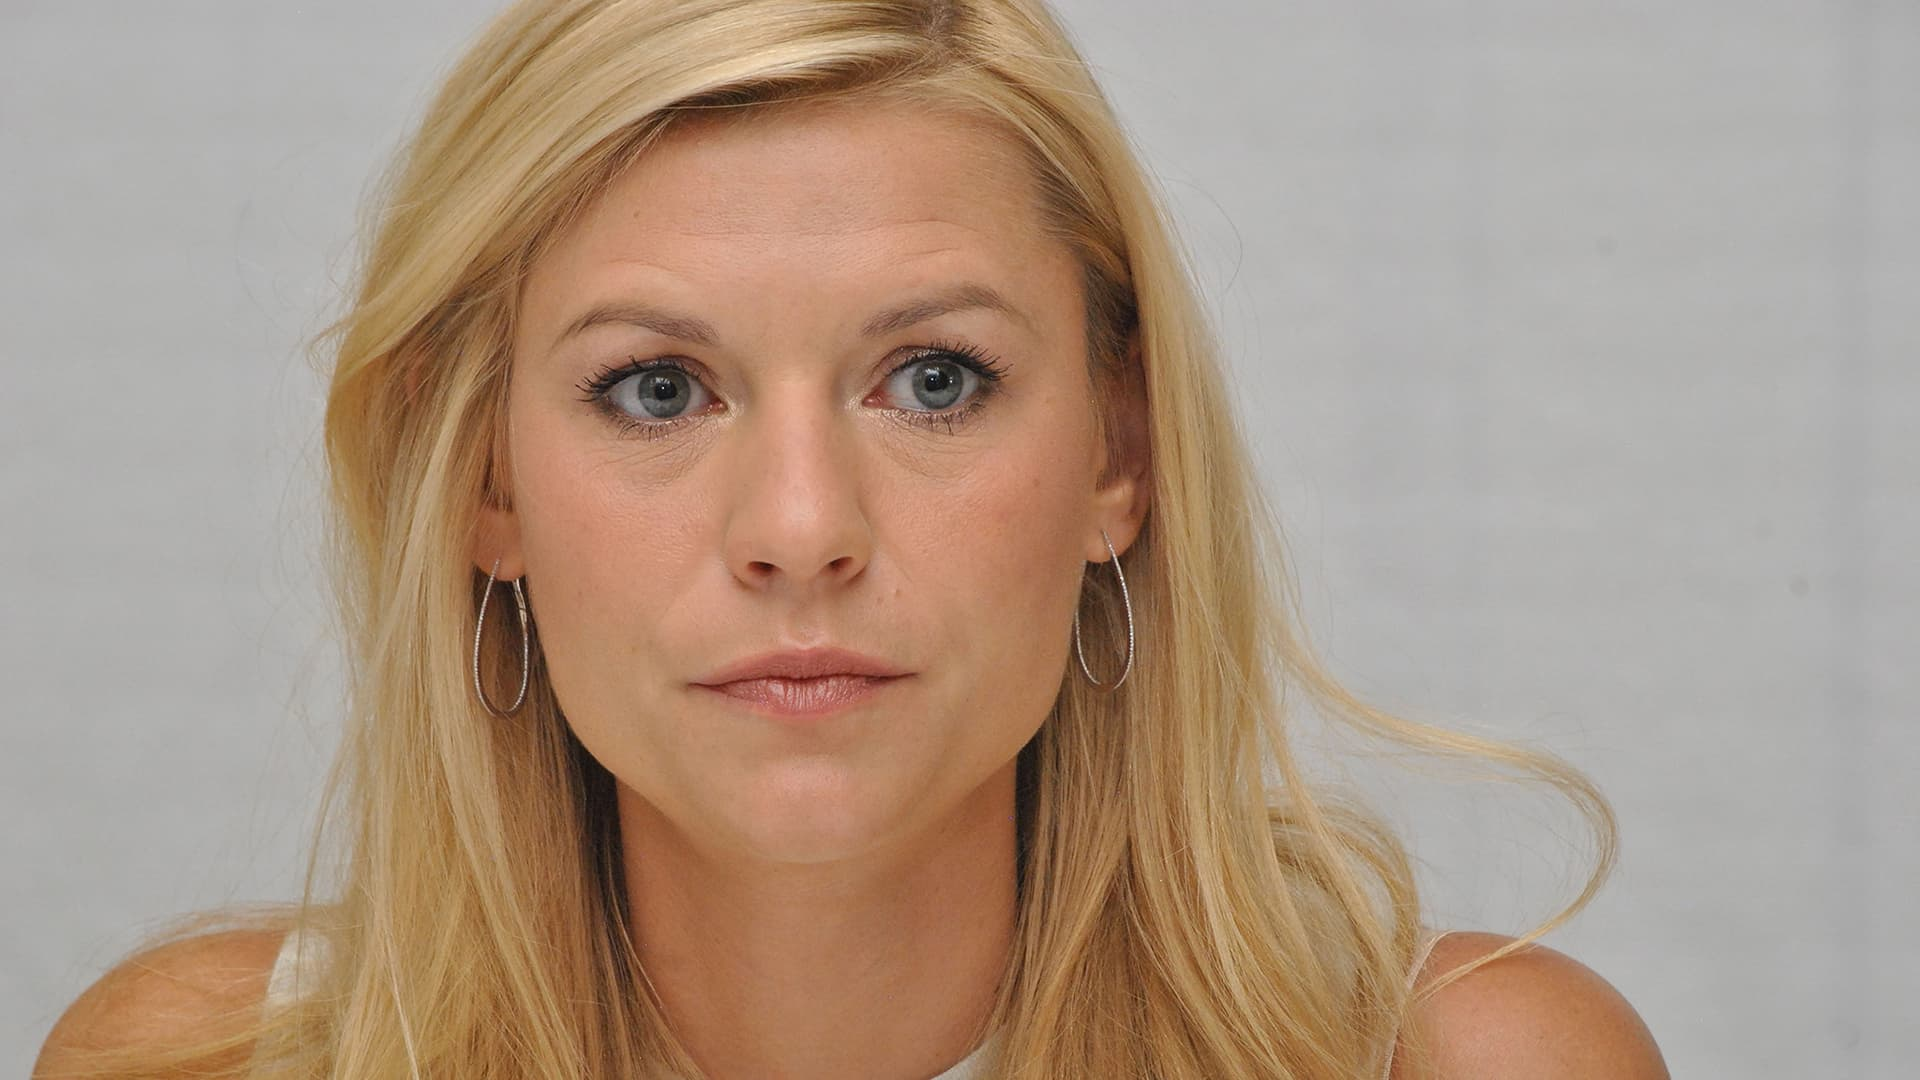 Jordan Wallpapers For Girls Claire Danes Wallpapers Hd High Quality Resolution Download